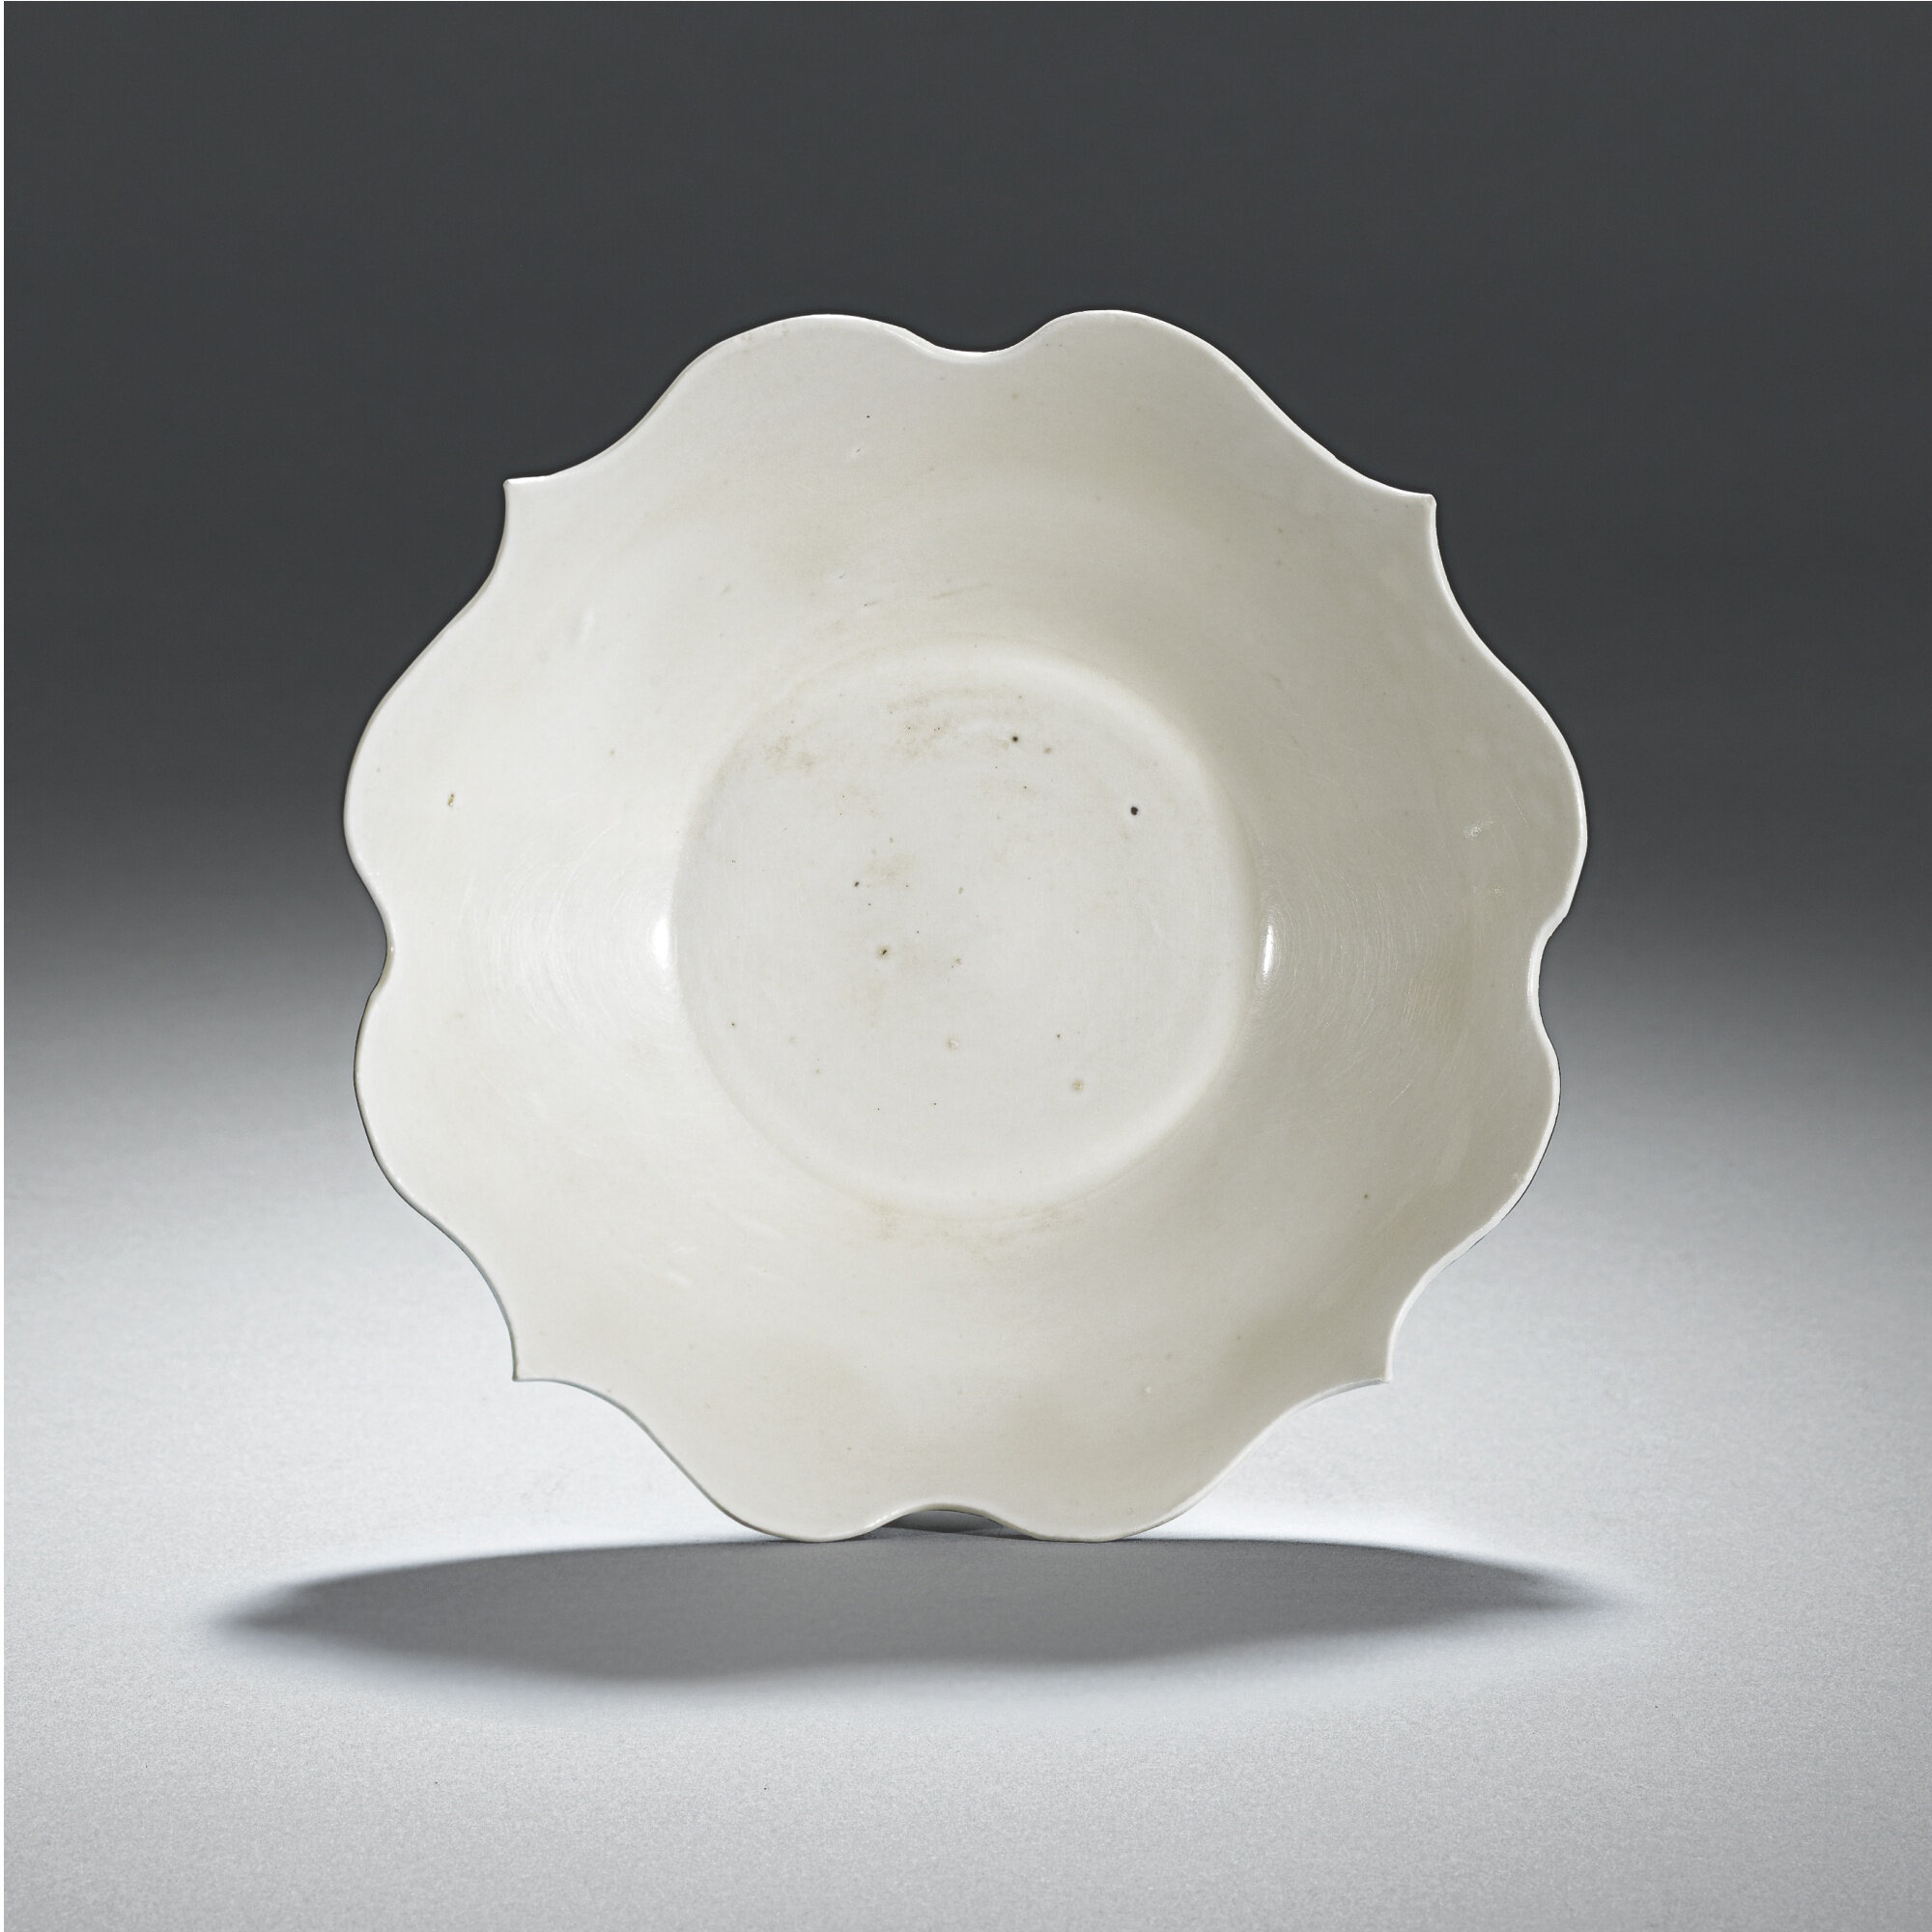 Lot 6. A quatrefoil white Dingyao dish,Five dynasties, 10th Century; 16.8cm., 6 5/8 in. Estimate 30,000—40,000 GBP. Lot Sold 37,250 GBP. Photo Sotheby's 2011